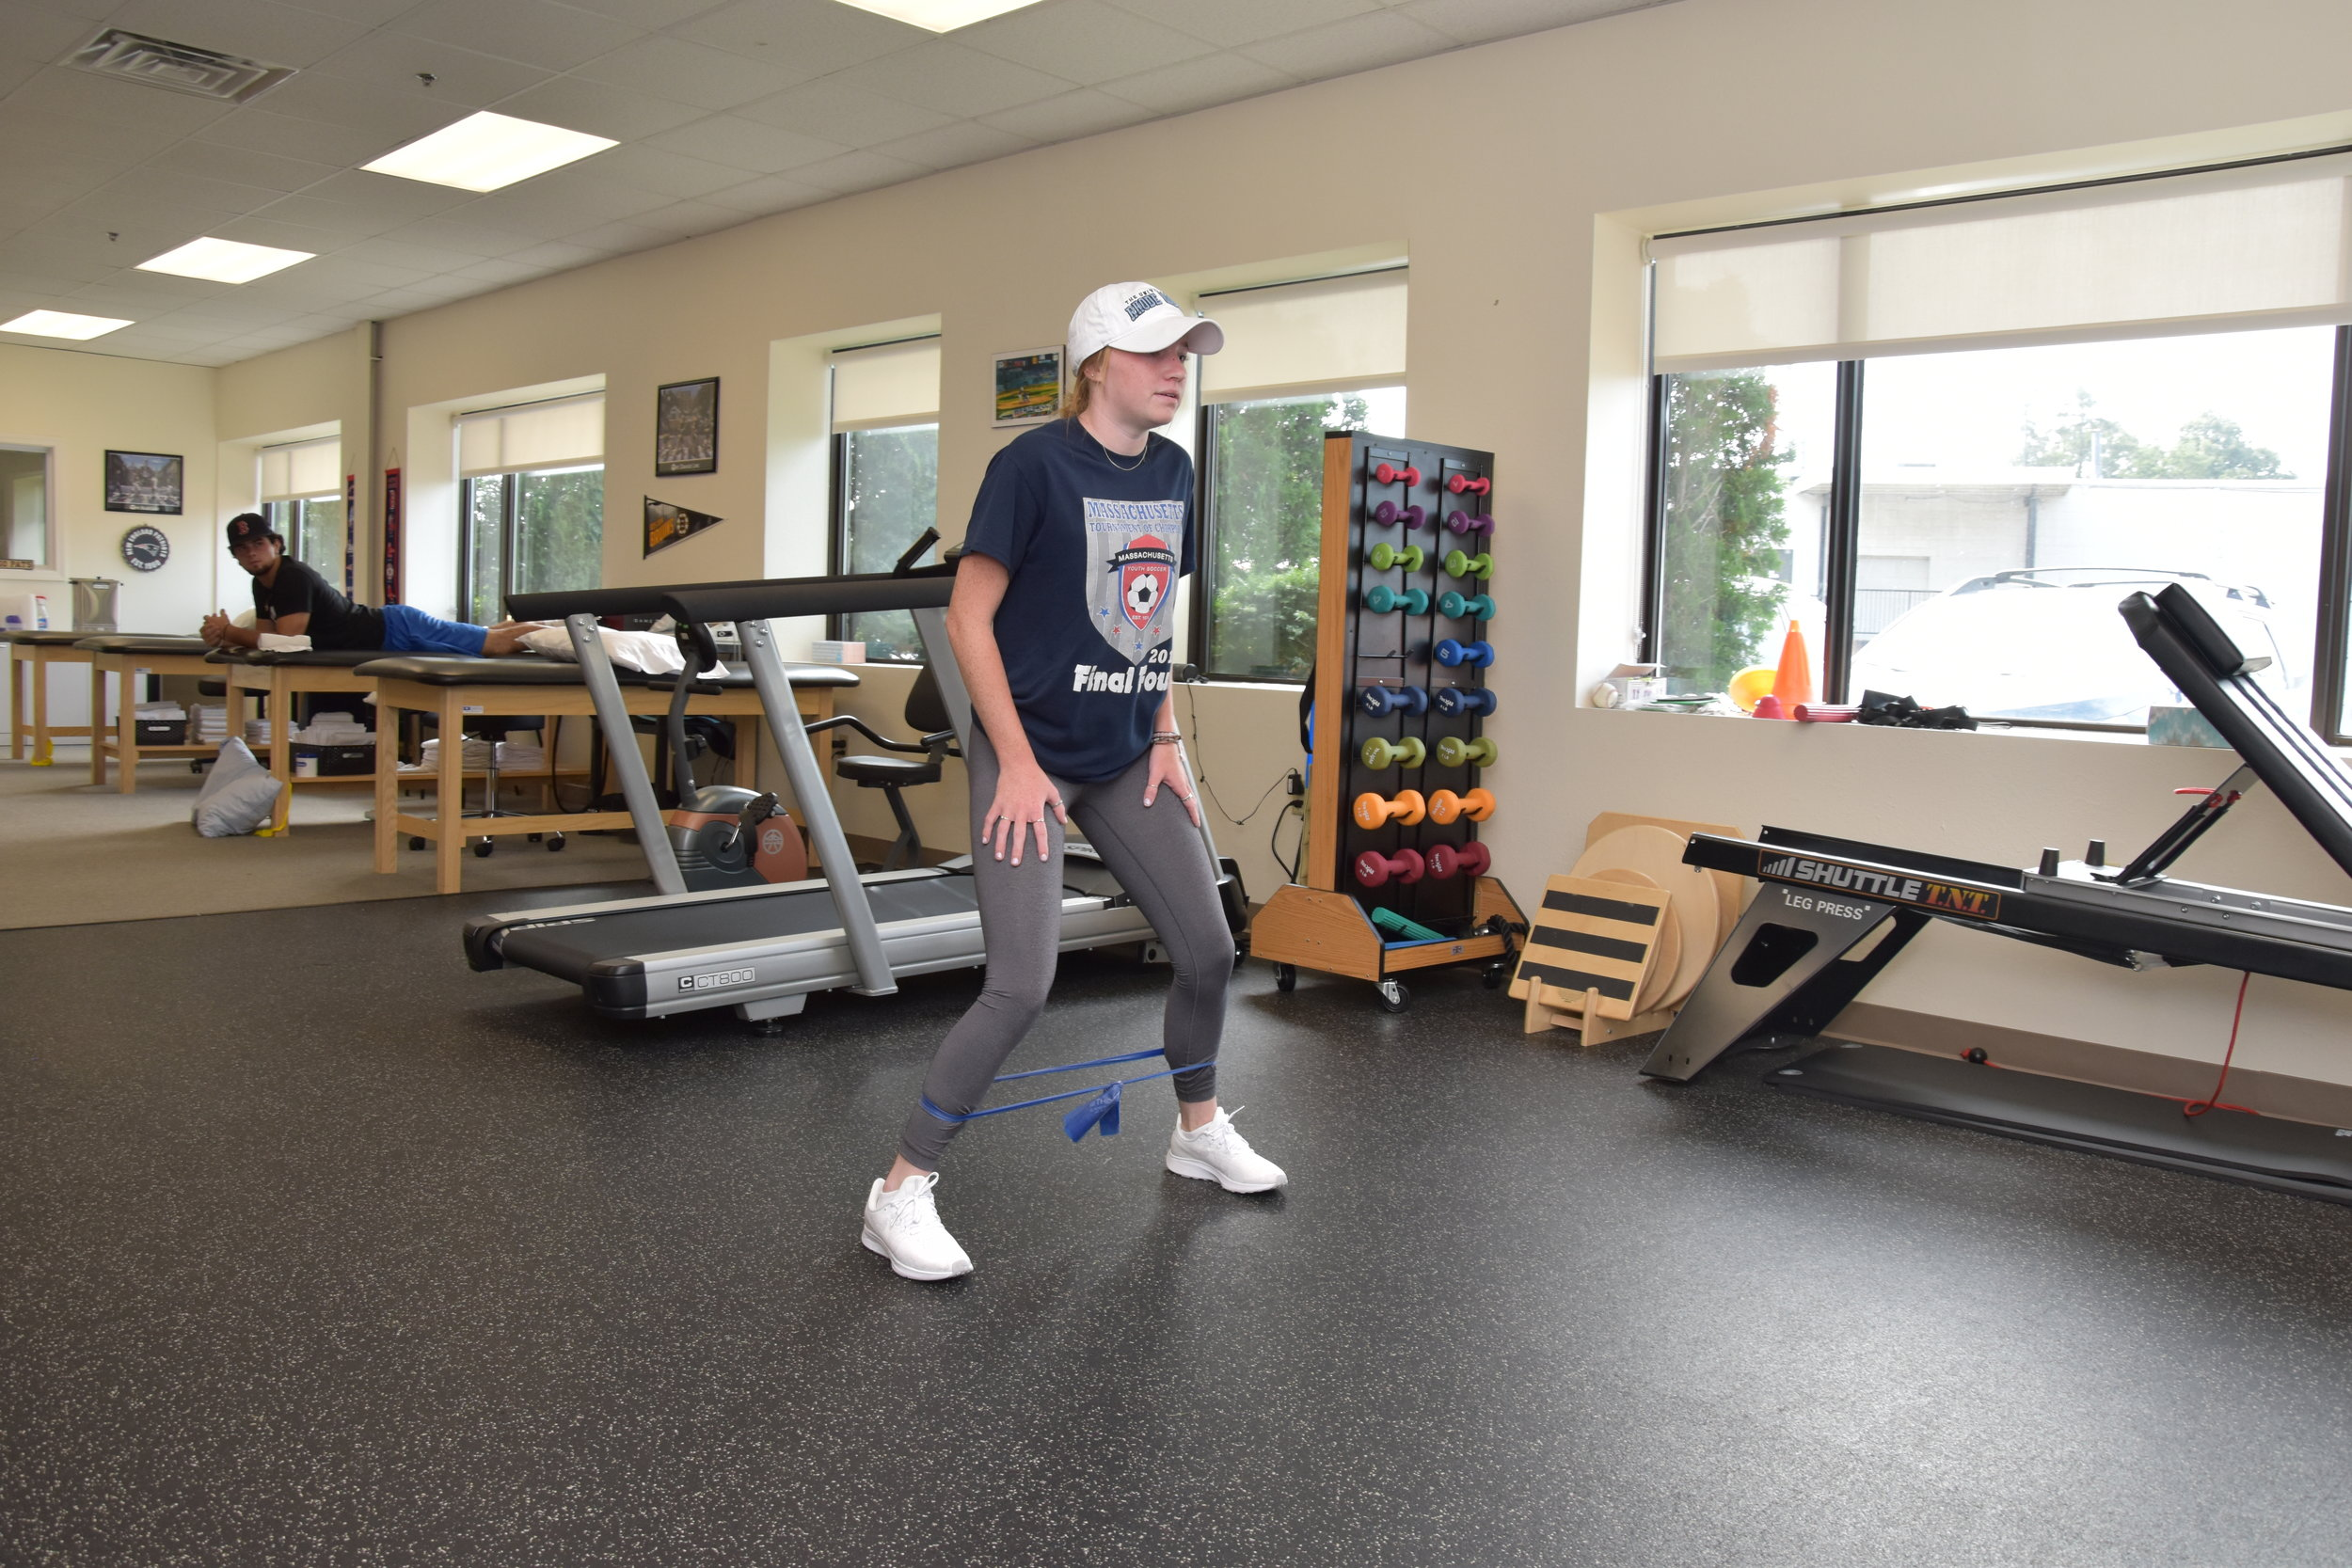 Orthopedic and surgical rehabilitation at Complete Game PT in Lowell MA